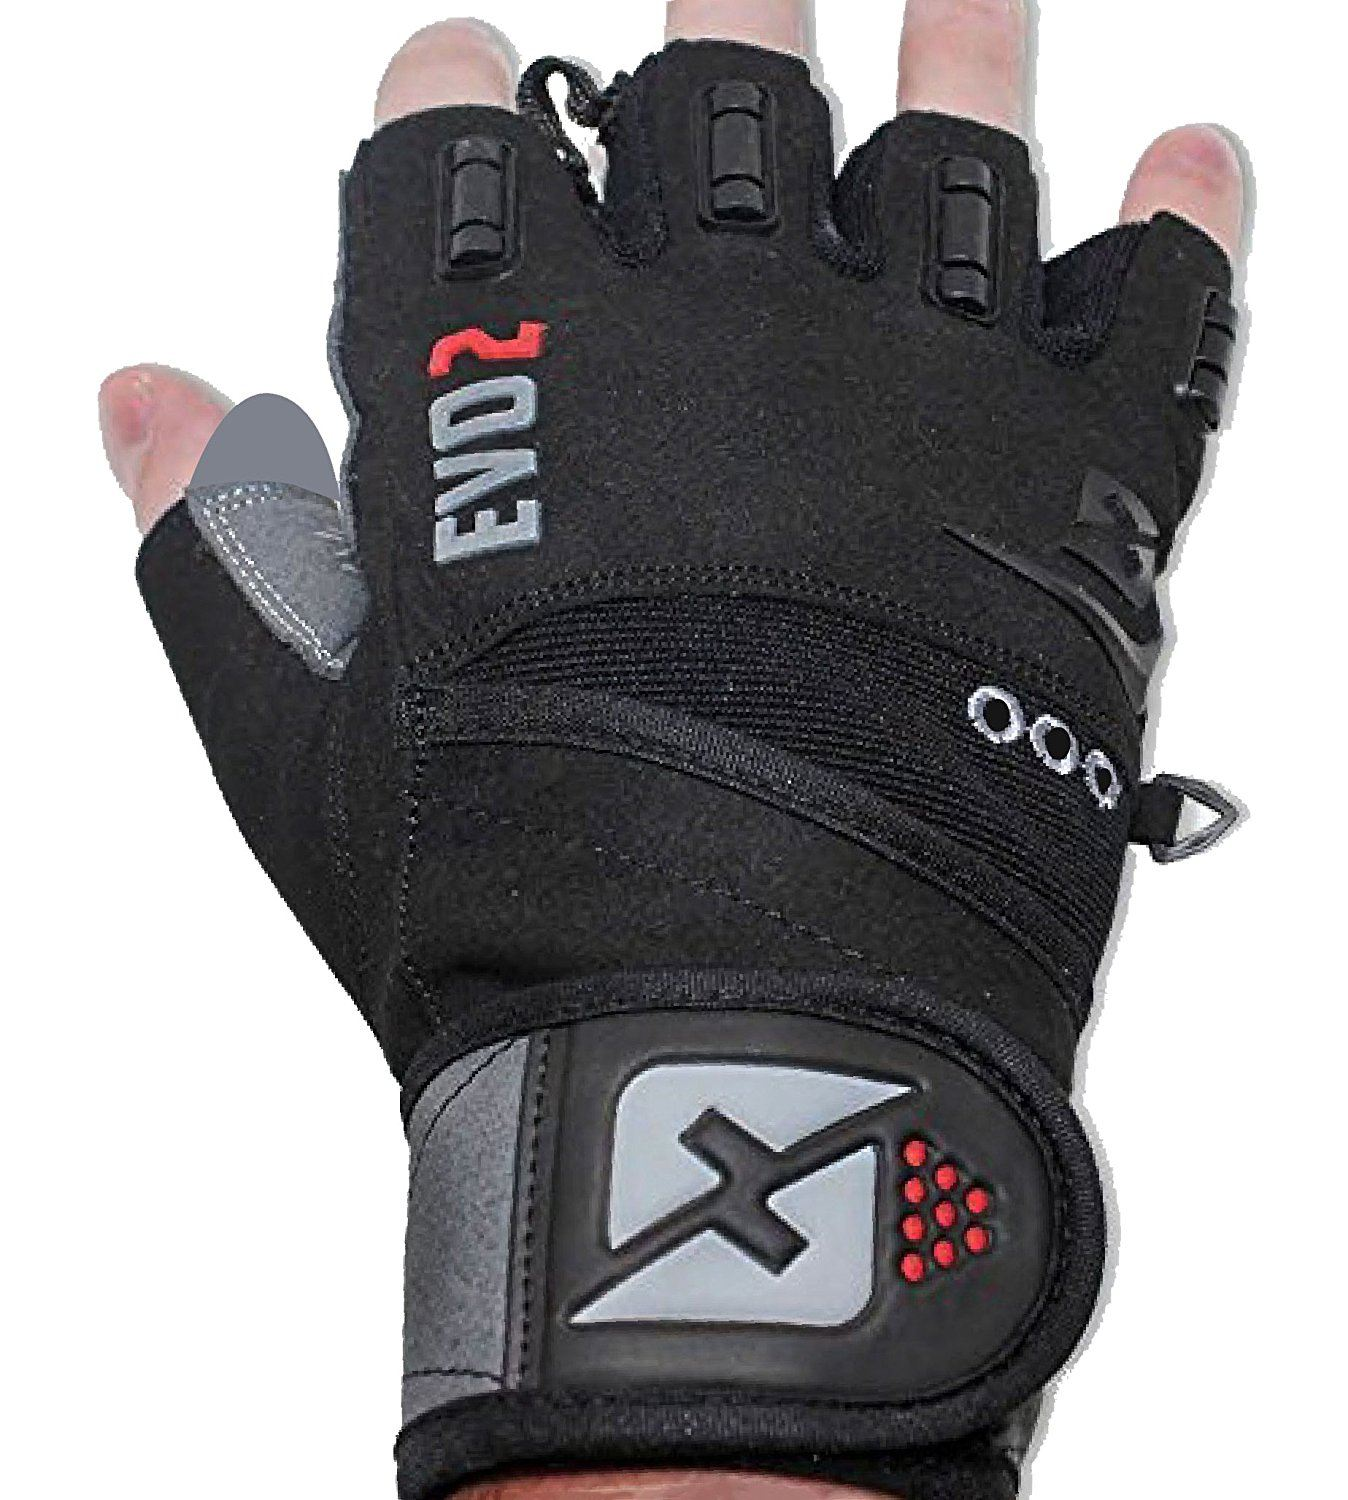 Skott Evo 2 Weightlifting Gloves